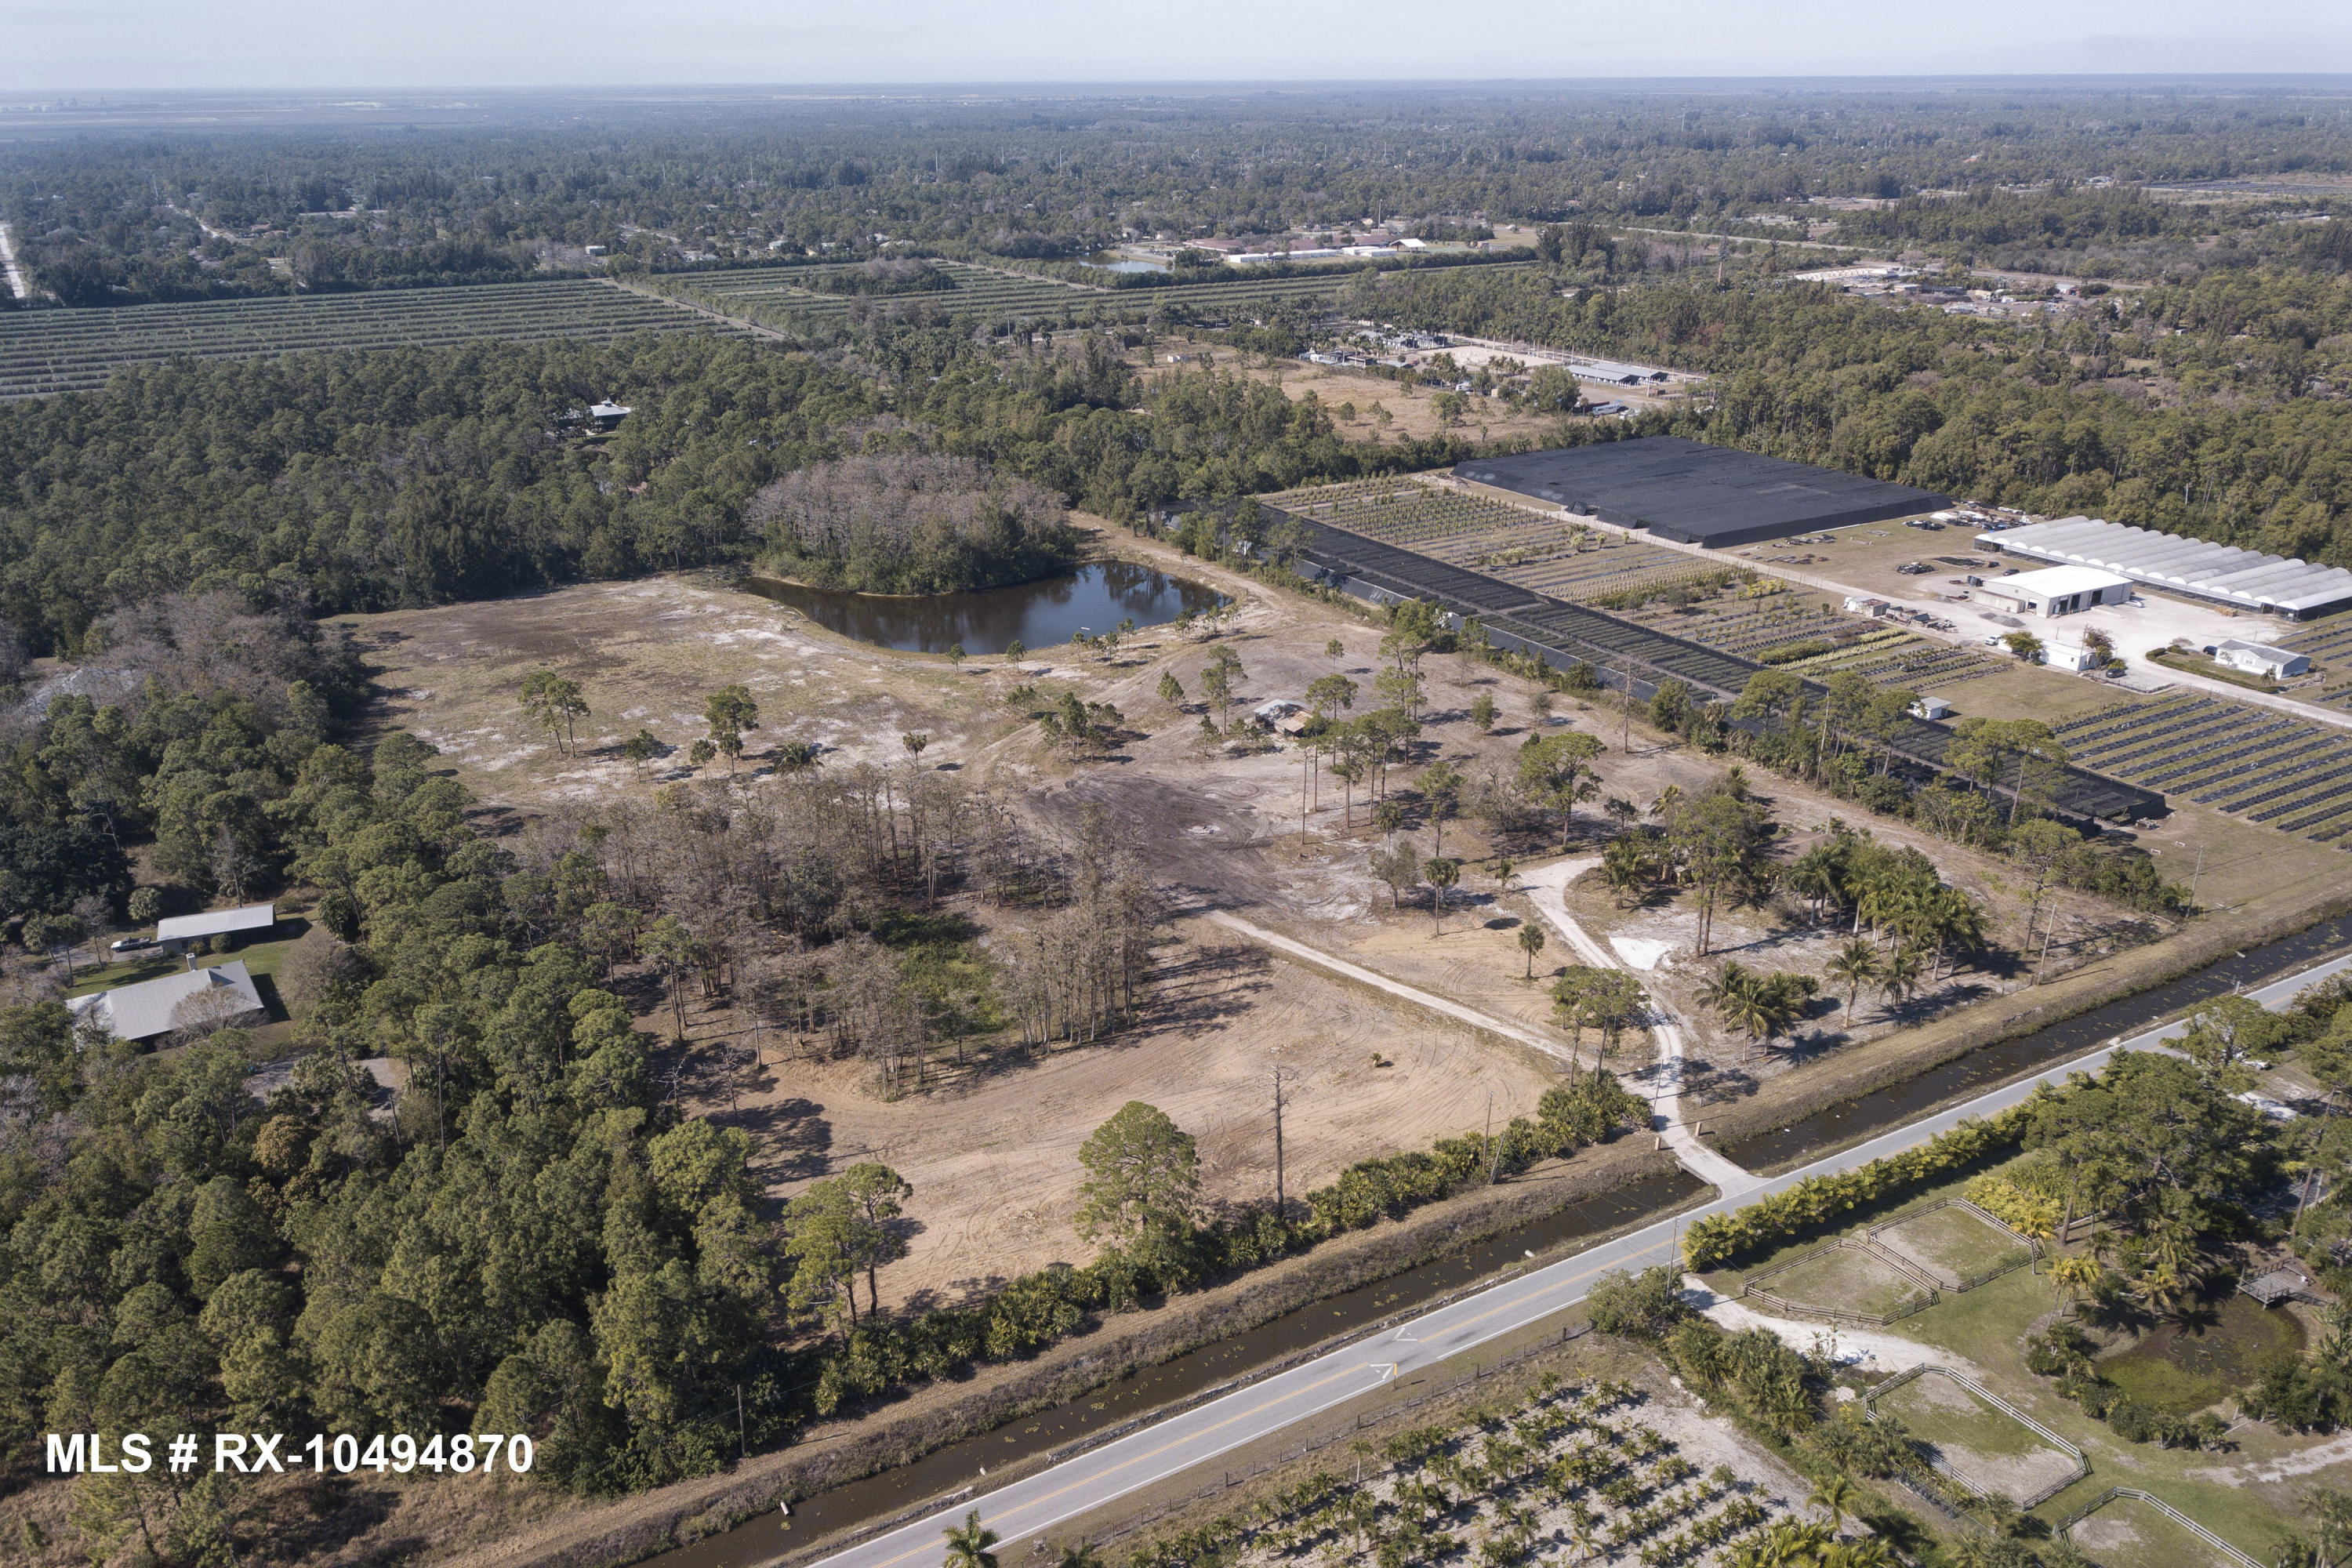 1529 B Road, Loxahatchee Groves, FL 33470